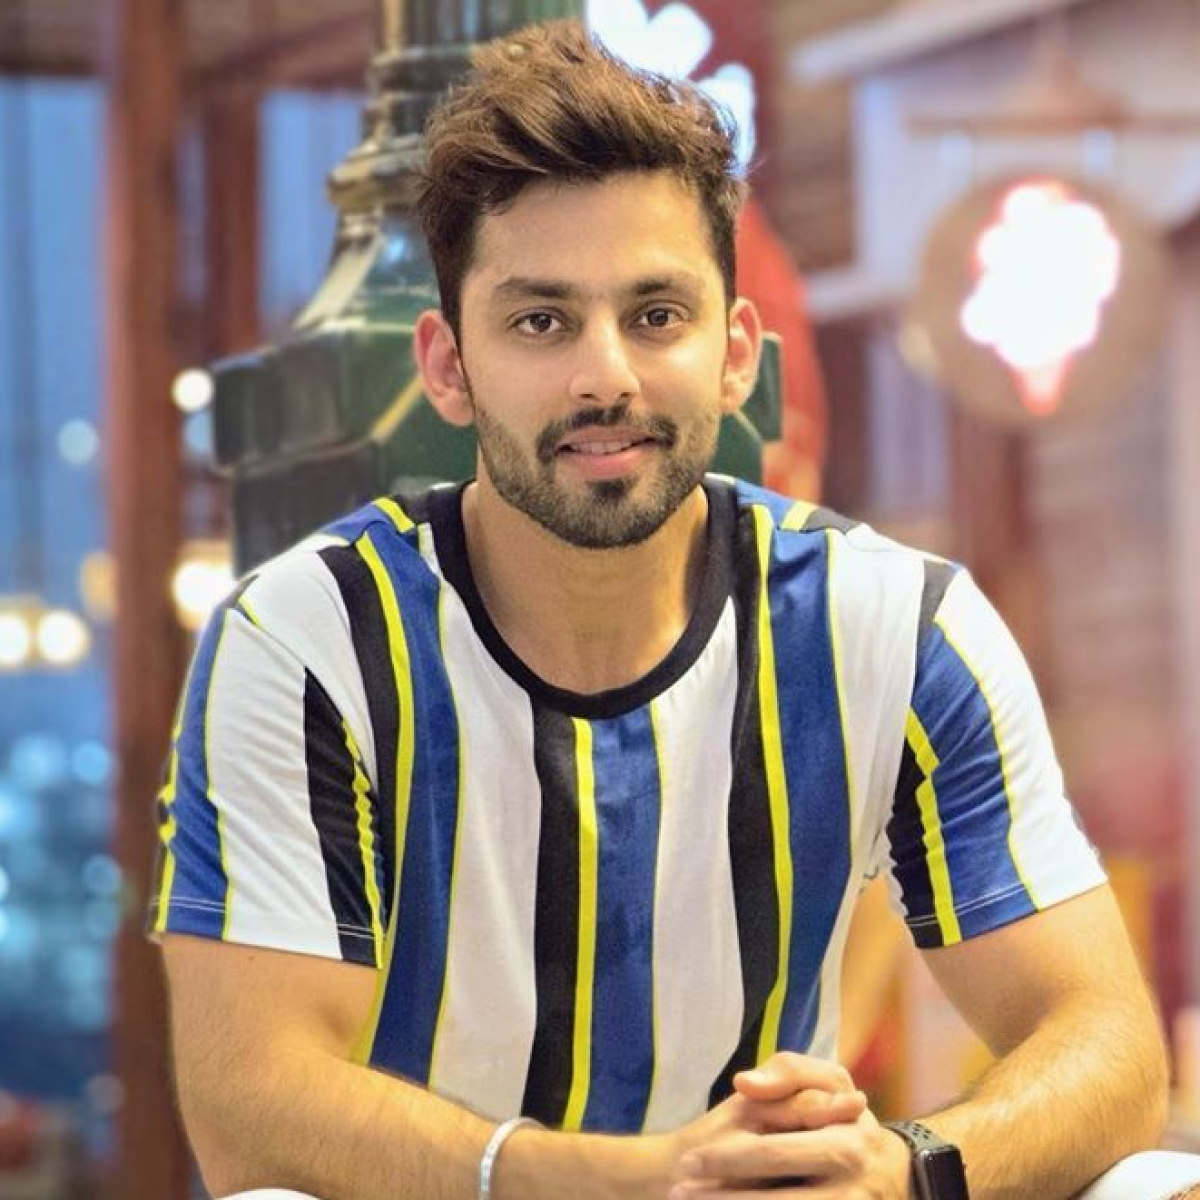 After buying 2 plane tickets to 'minimise contact', Himansh Kohli says his family tested positive for COVID-19